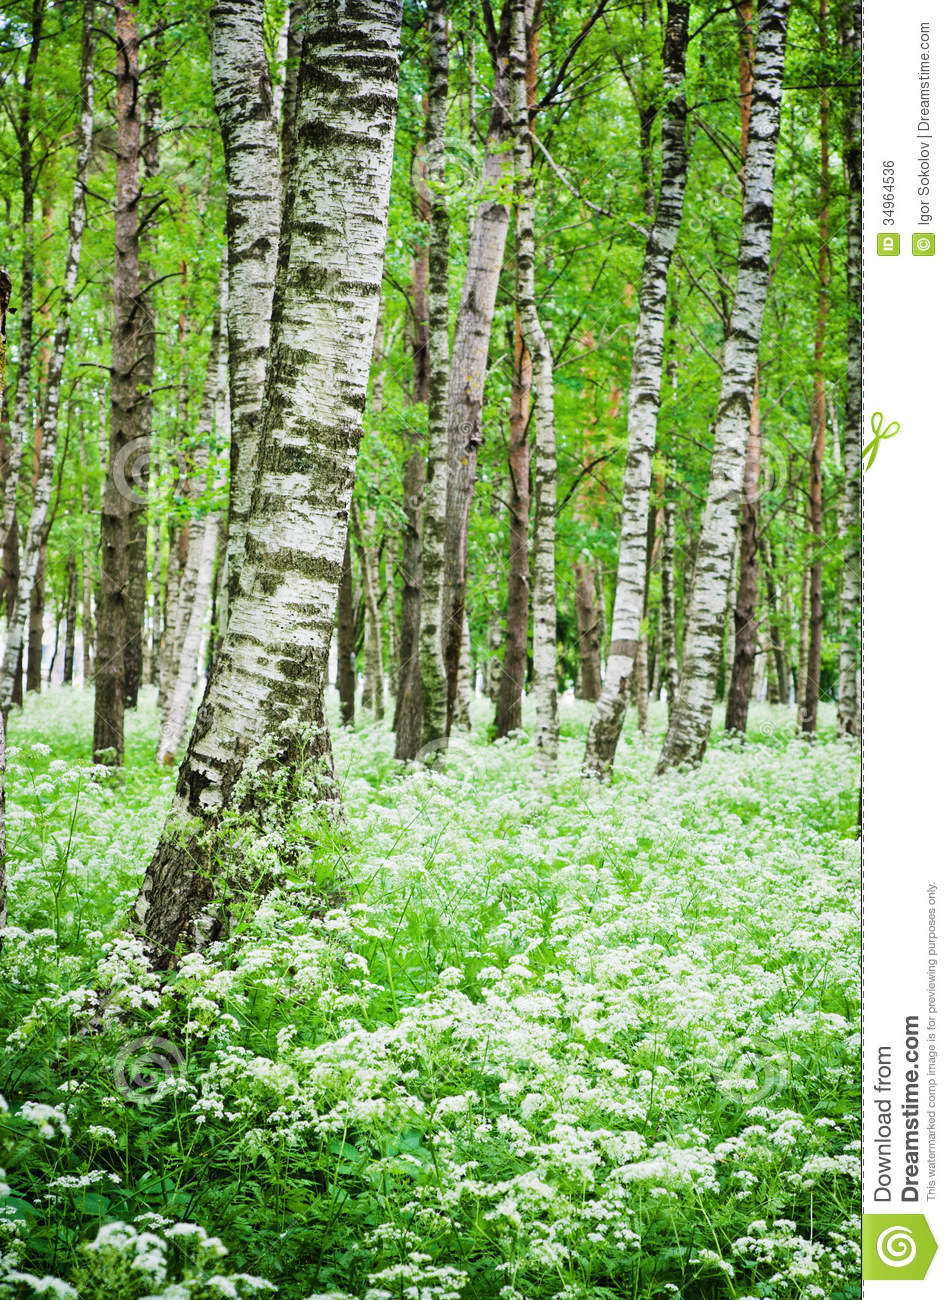 Tree trunks in a birch forest and wild flowers royalty free stock image image 34964536 - Flowers that grow on tree trunks ...